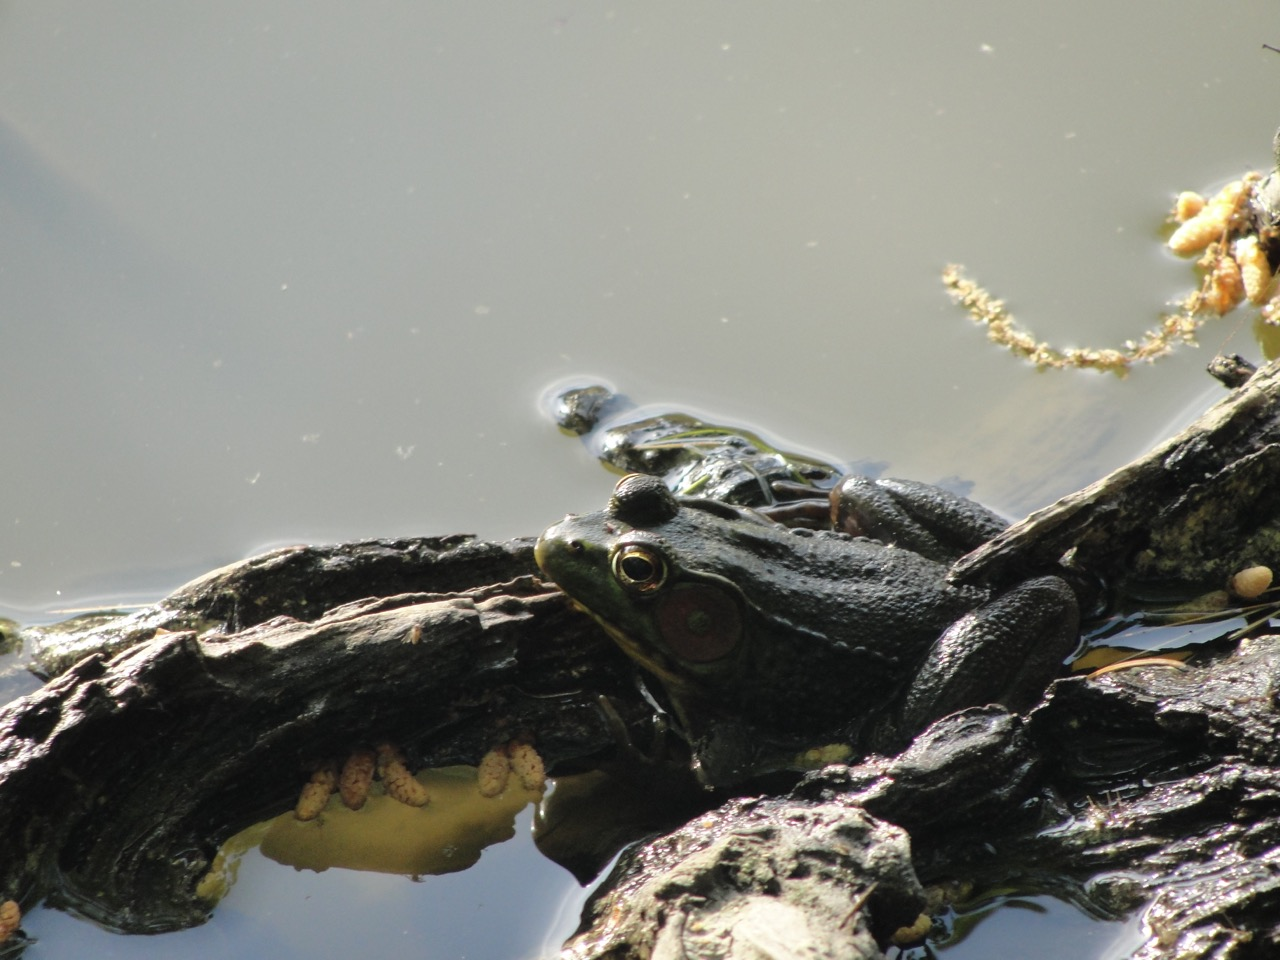 Frog in camouflage